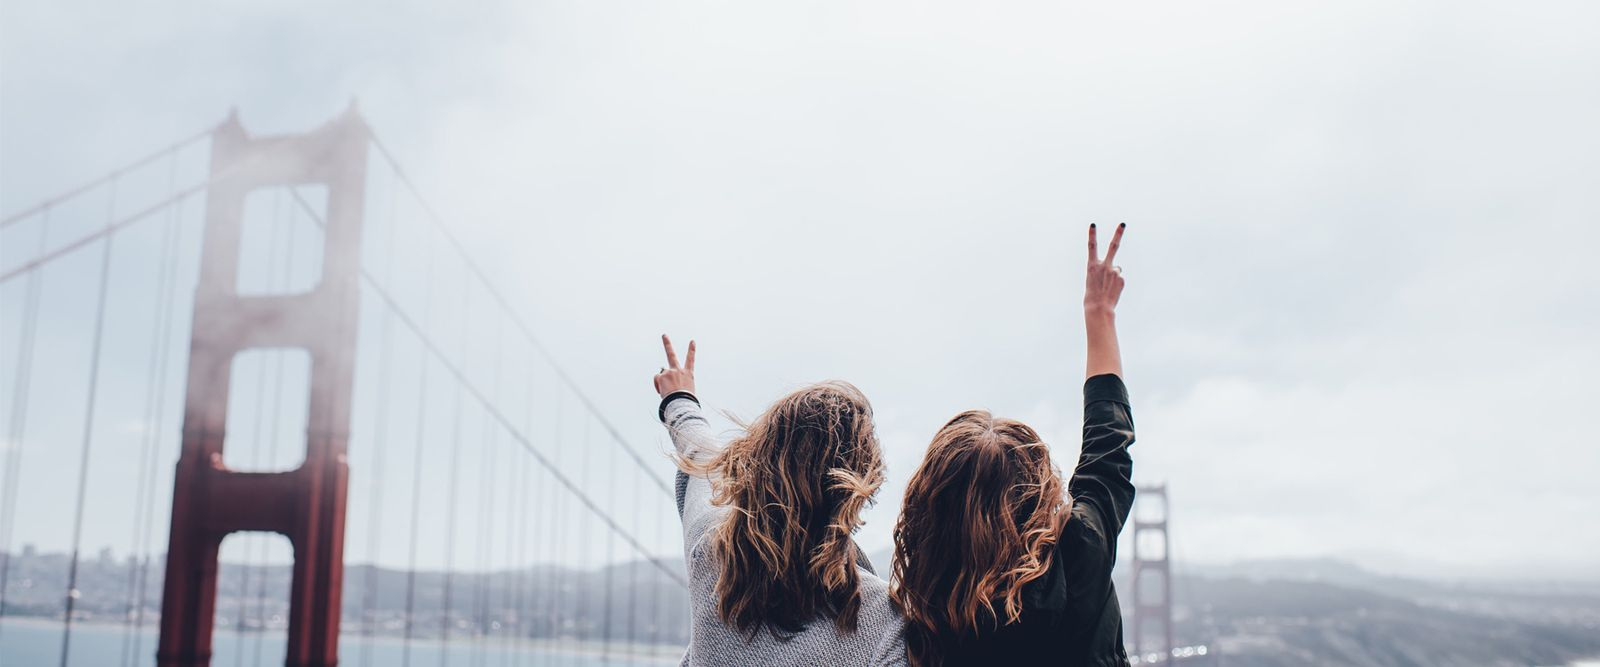 two girls cheering in front of a bridge